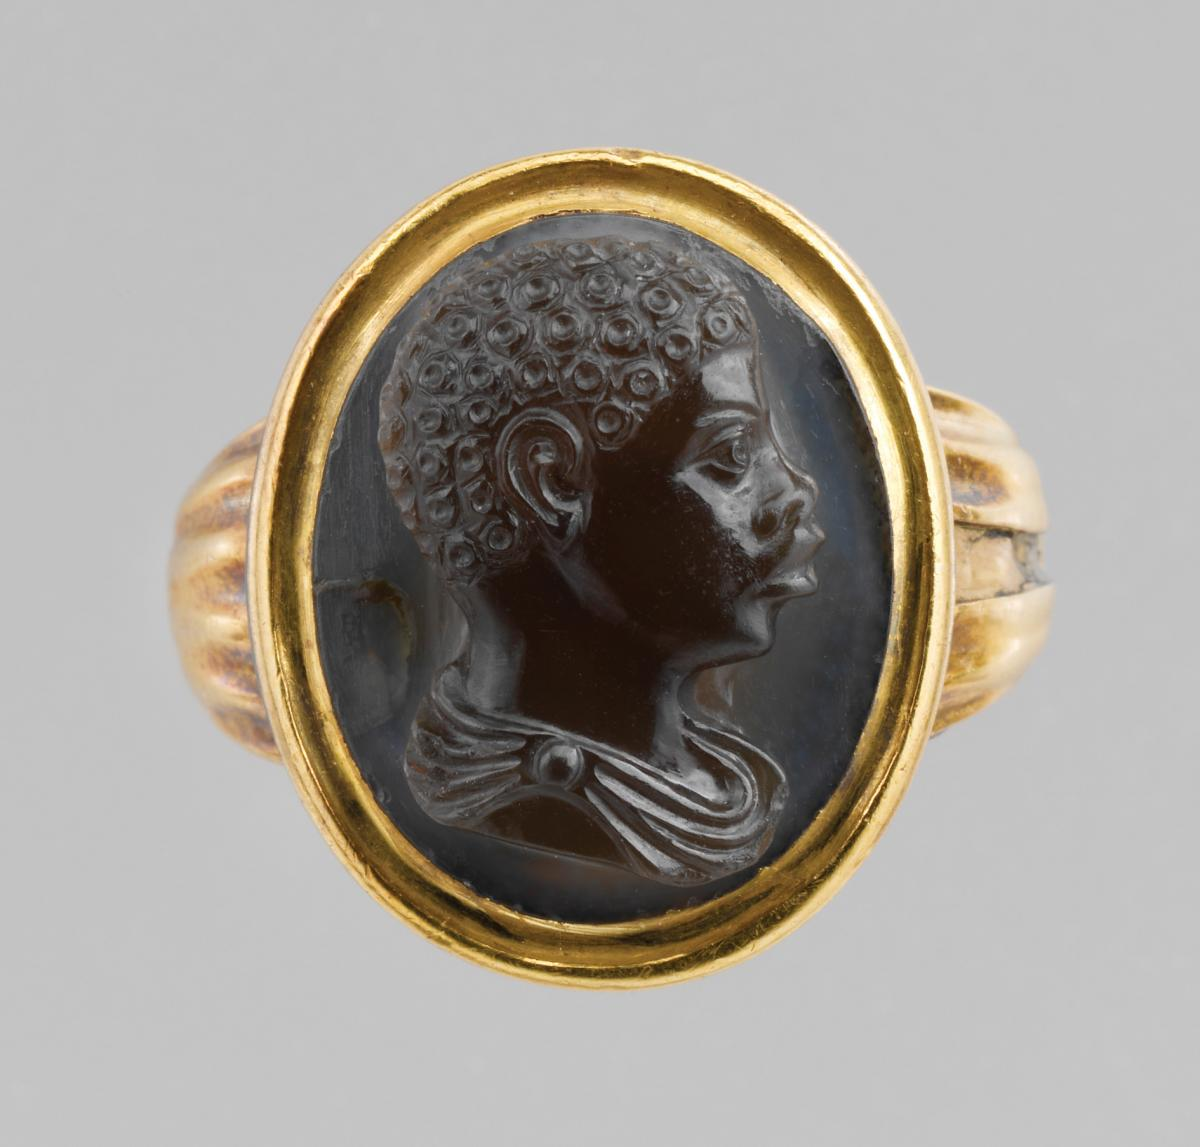 Gold frame with a black stone in the center, carved with the profile of a young African boy